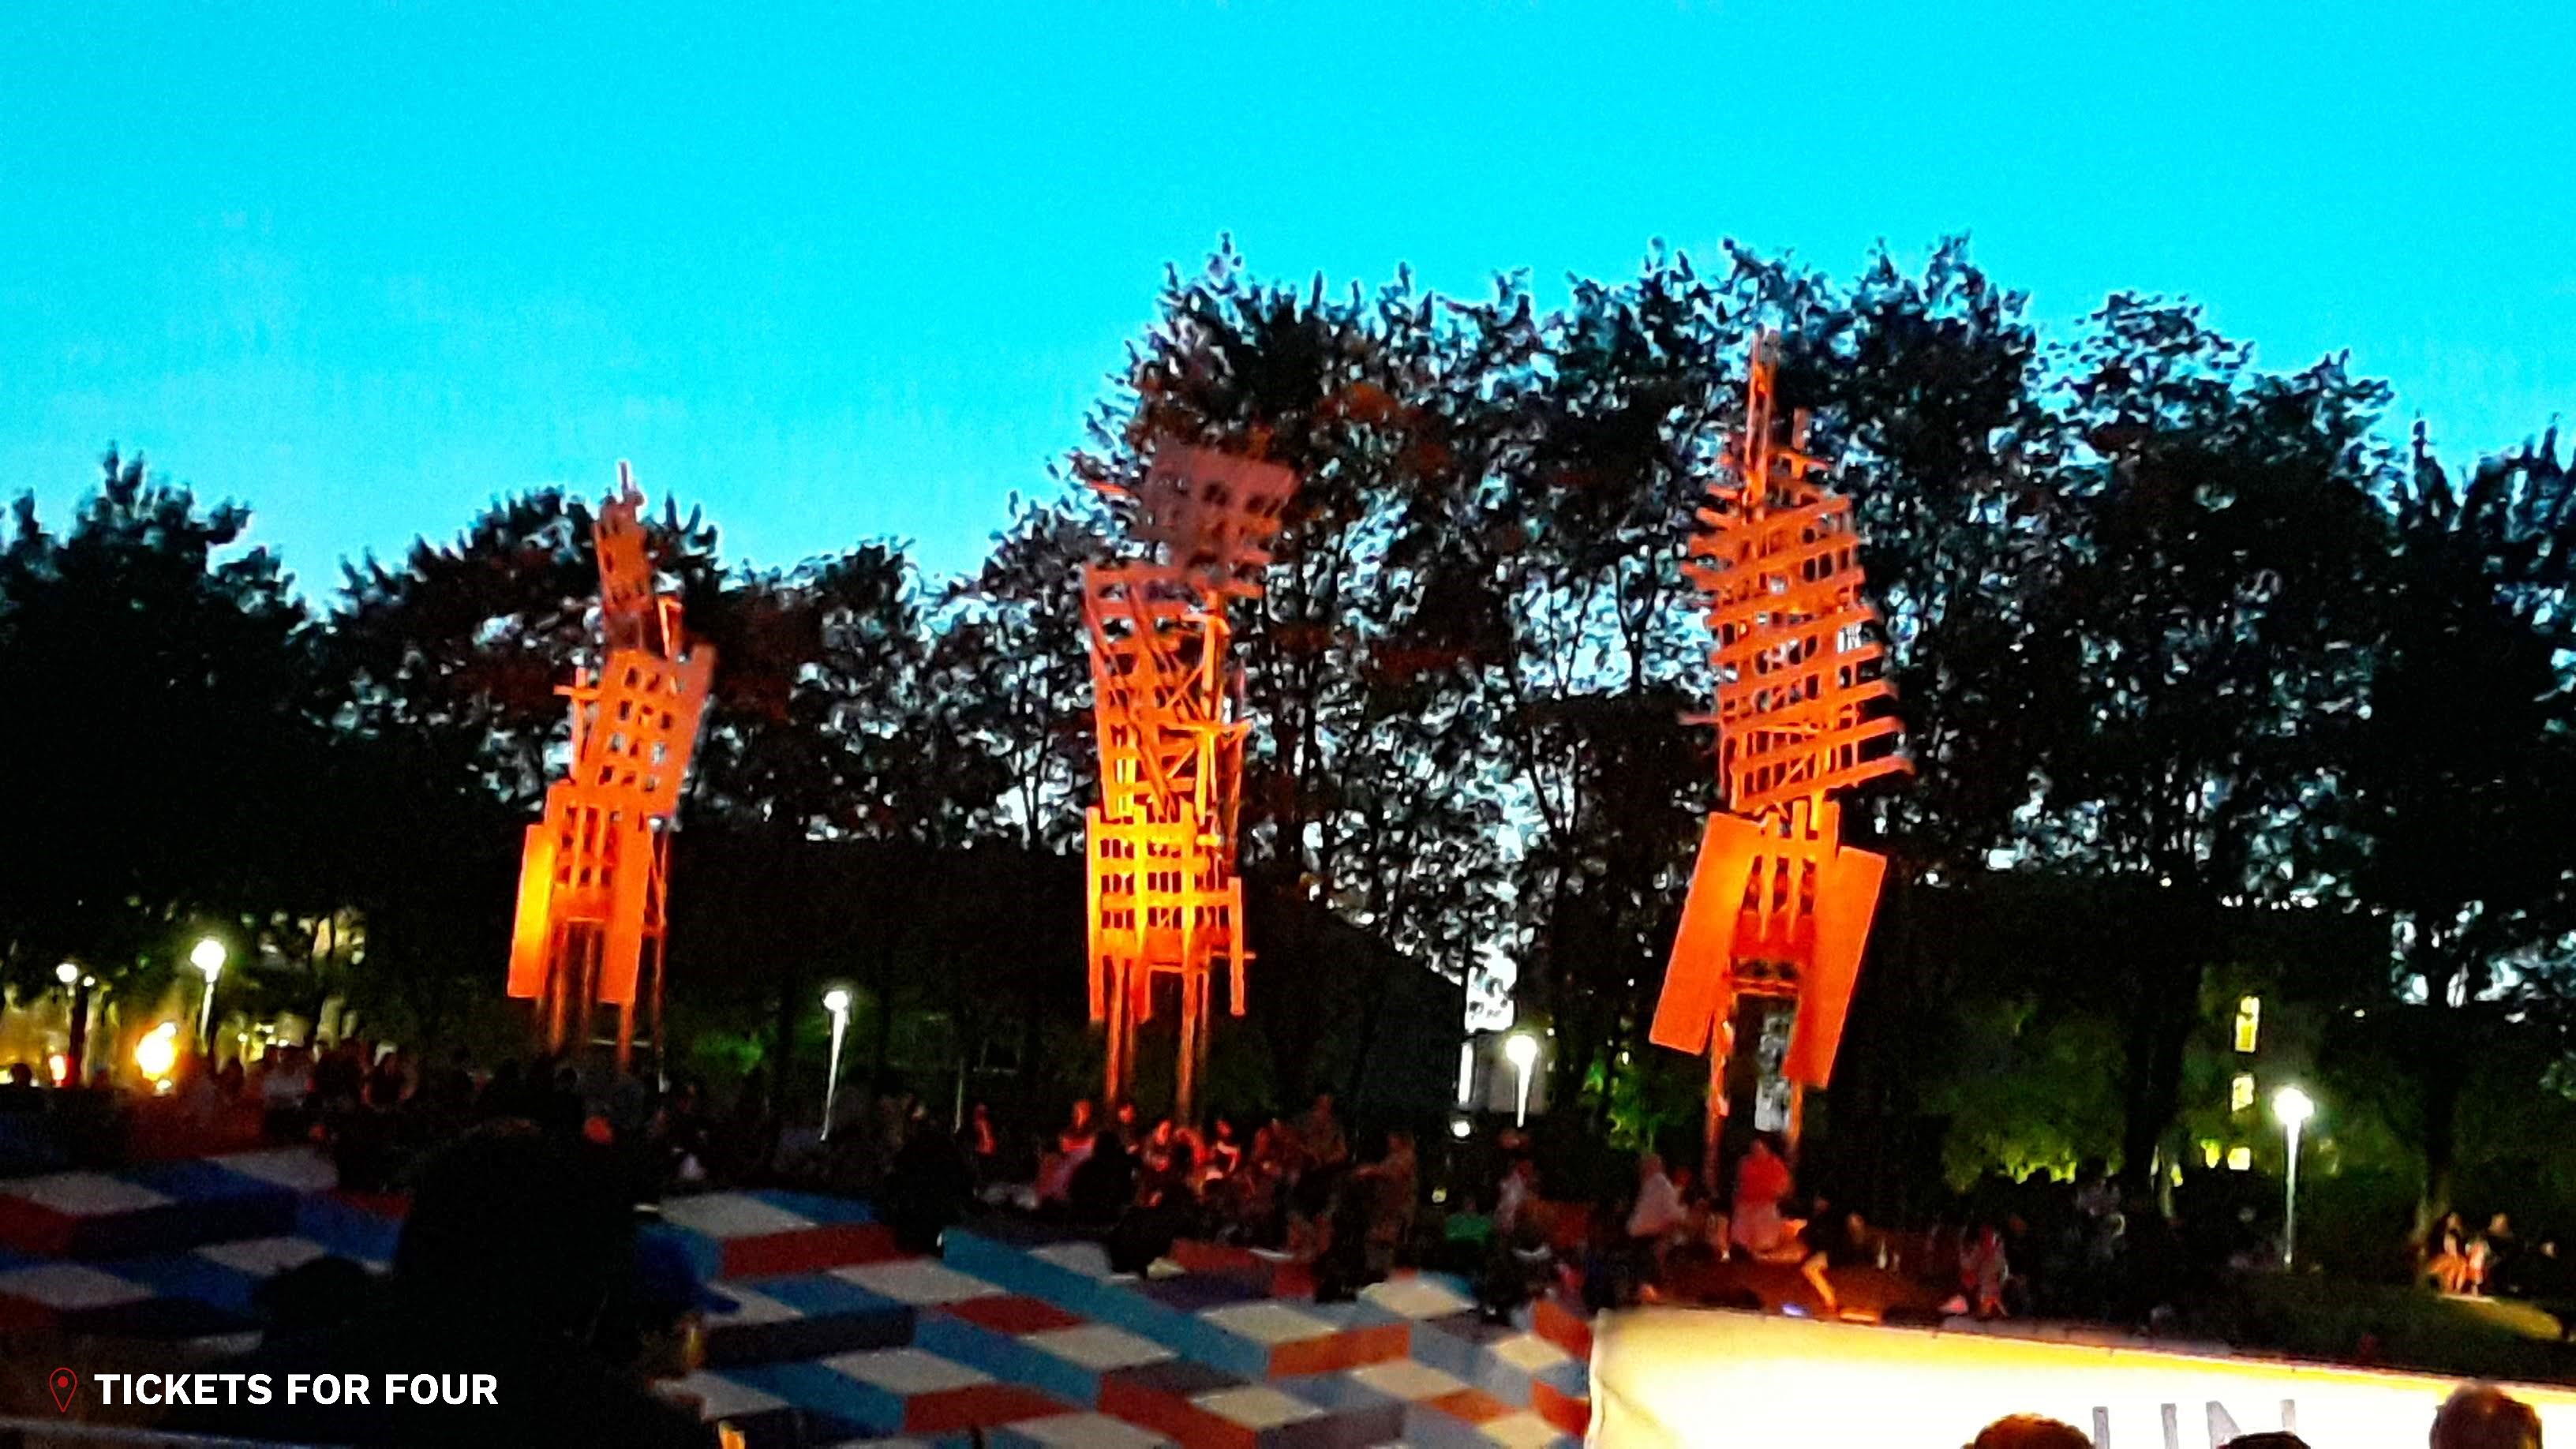 Montreal Cirque Festival by Tickets For Four